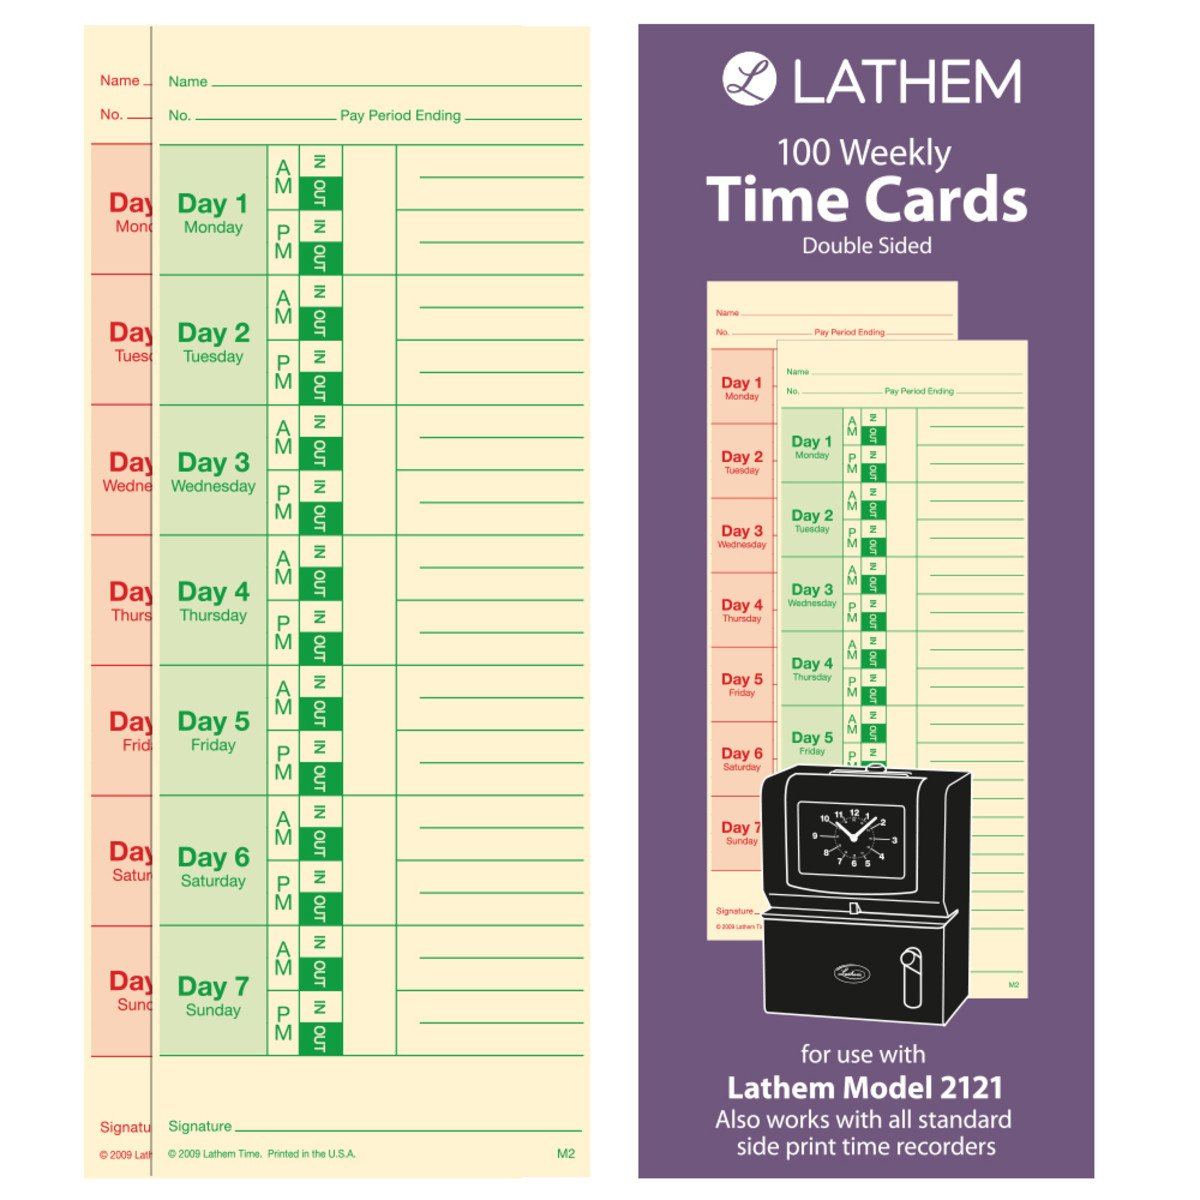 Lathem Weekly Time Cards, Double-Sided, for Lathem Model 2121/Side-Print Time Clocks, 100 Pack (M2-100) Lathem Time Corporation